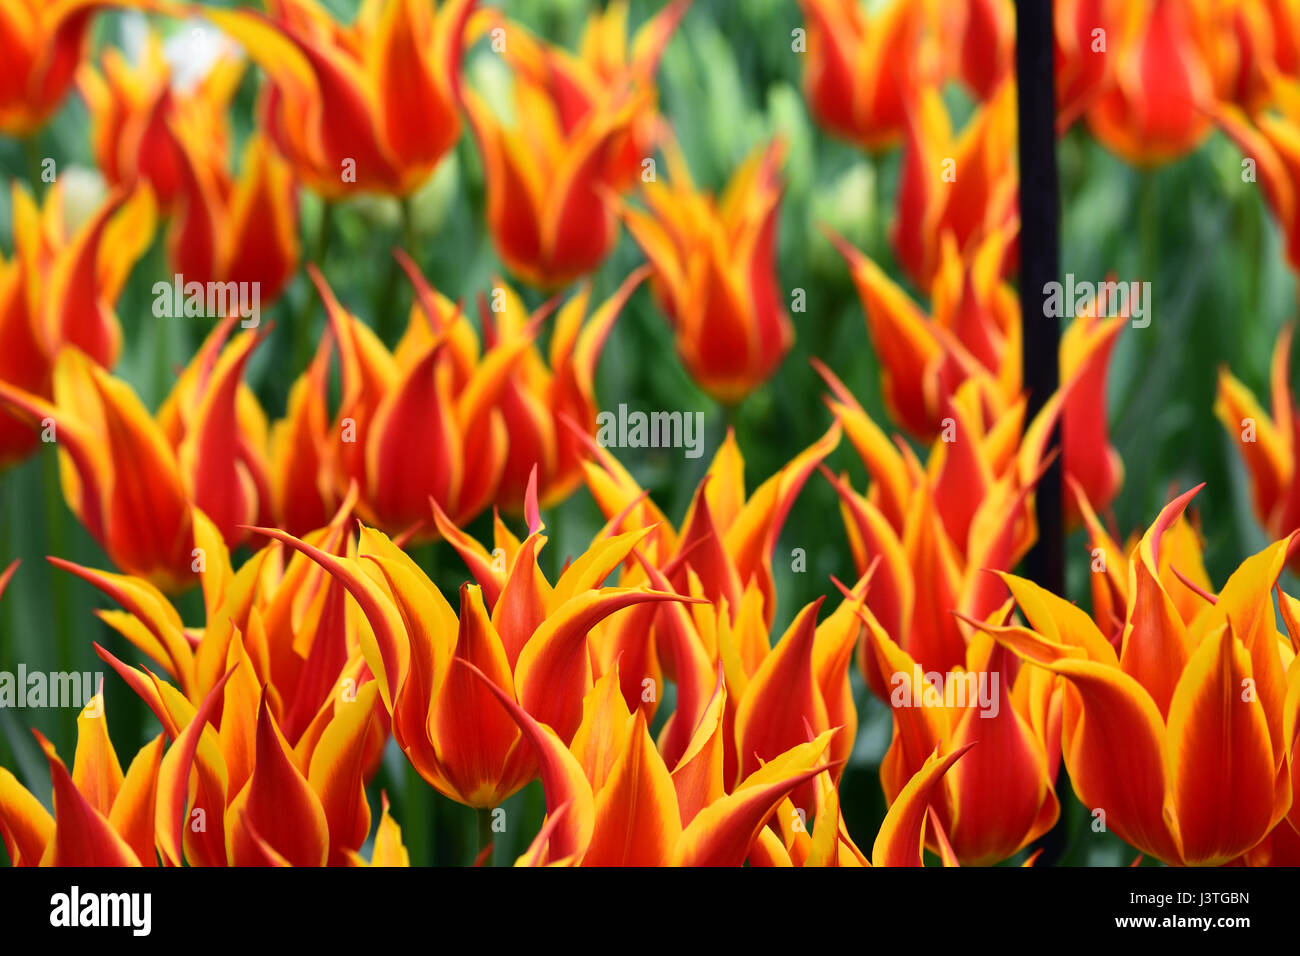 Orange and yellow tulips that look like a fire stock photo orange and yellow tulips that look like a fire izmirmasajfo